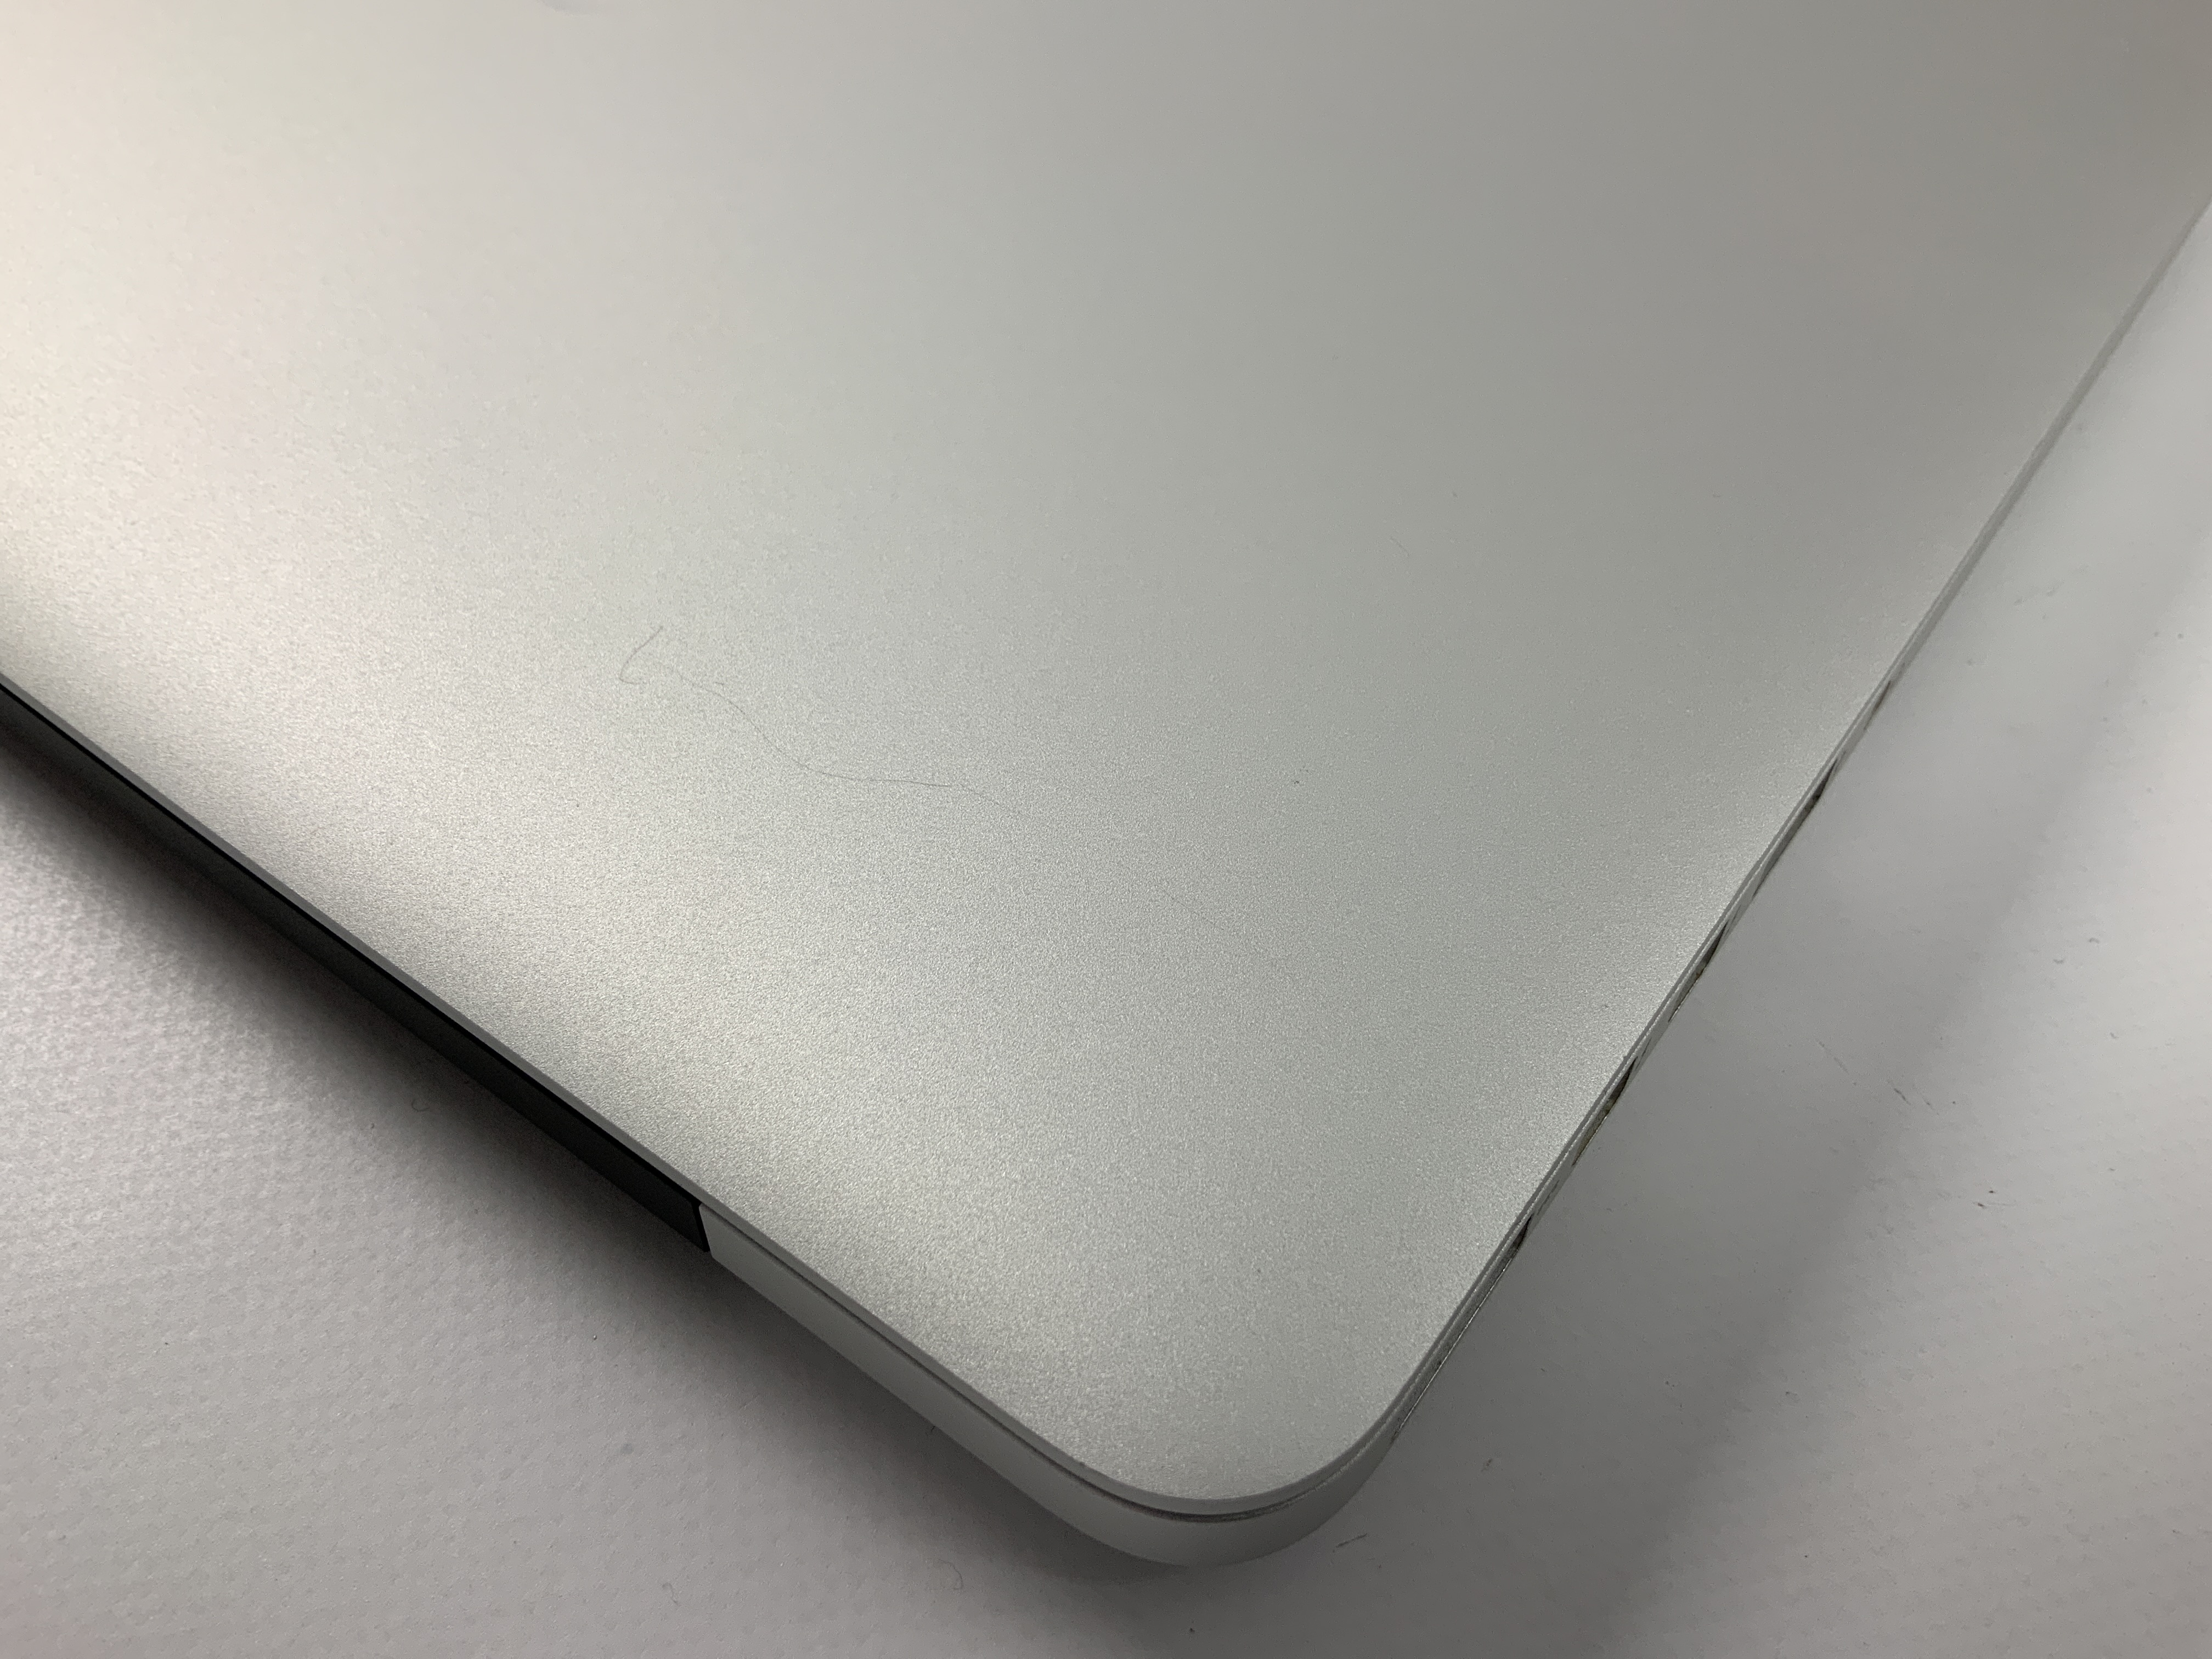 "MacBook Pro Retina 13"" Early 2015 (Intel Core i5 2.7 GHz 8 GB RAM 256 GB SSD), Intel Core i5 2.7 GHz, 8 GB RAM, 256 GB SSD, obraz 4"